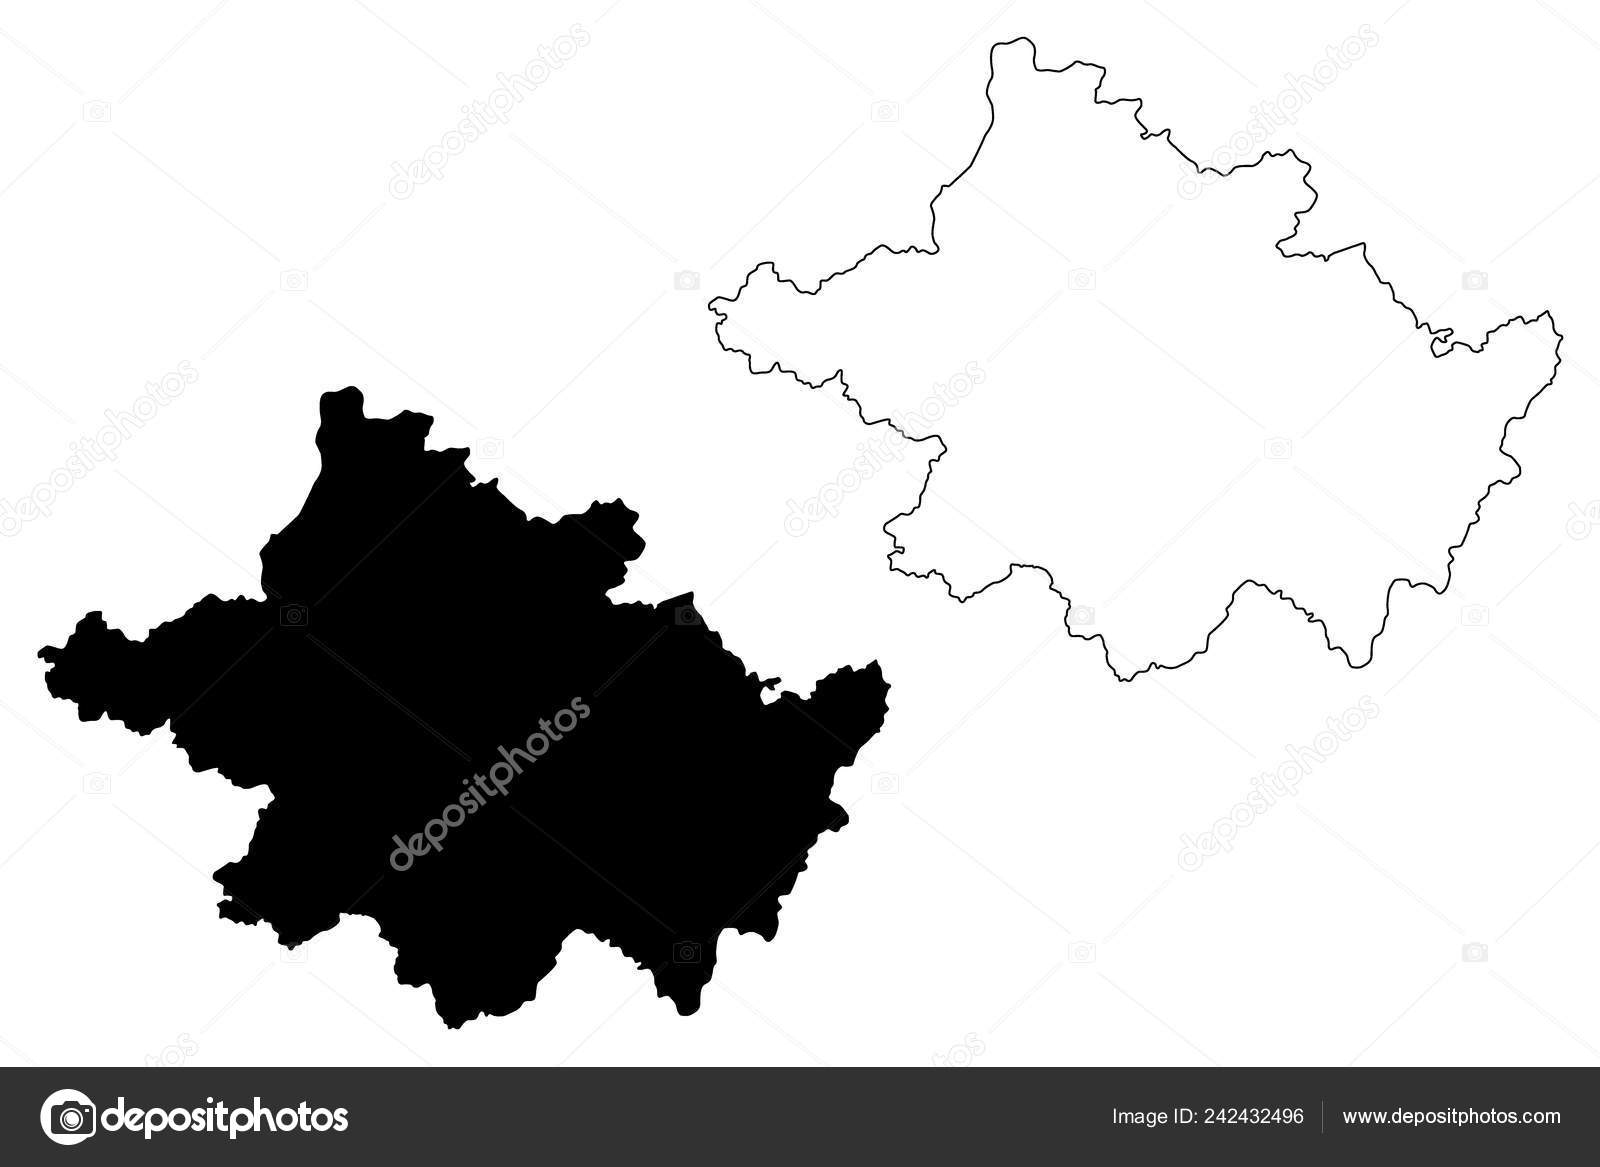 Map Of Northern Ireland Counties.County Tyrone United Kingdom Northern Ireland Counties Northern